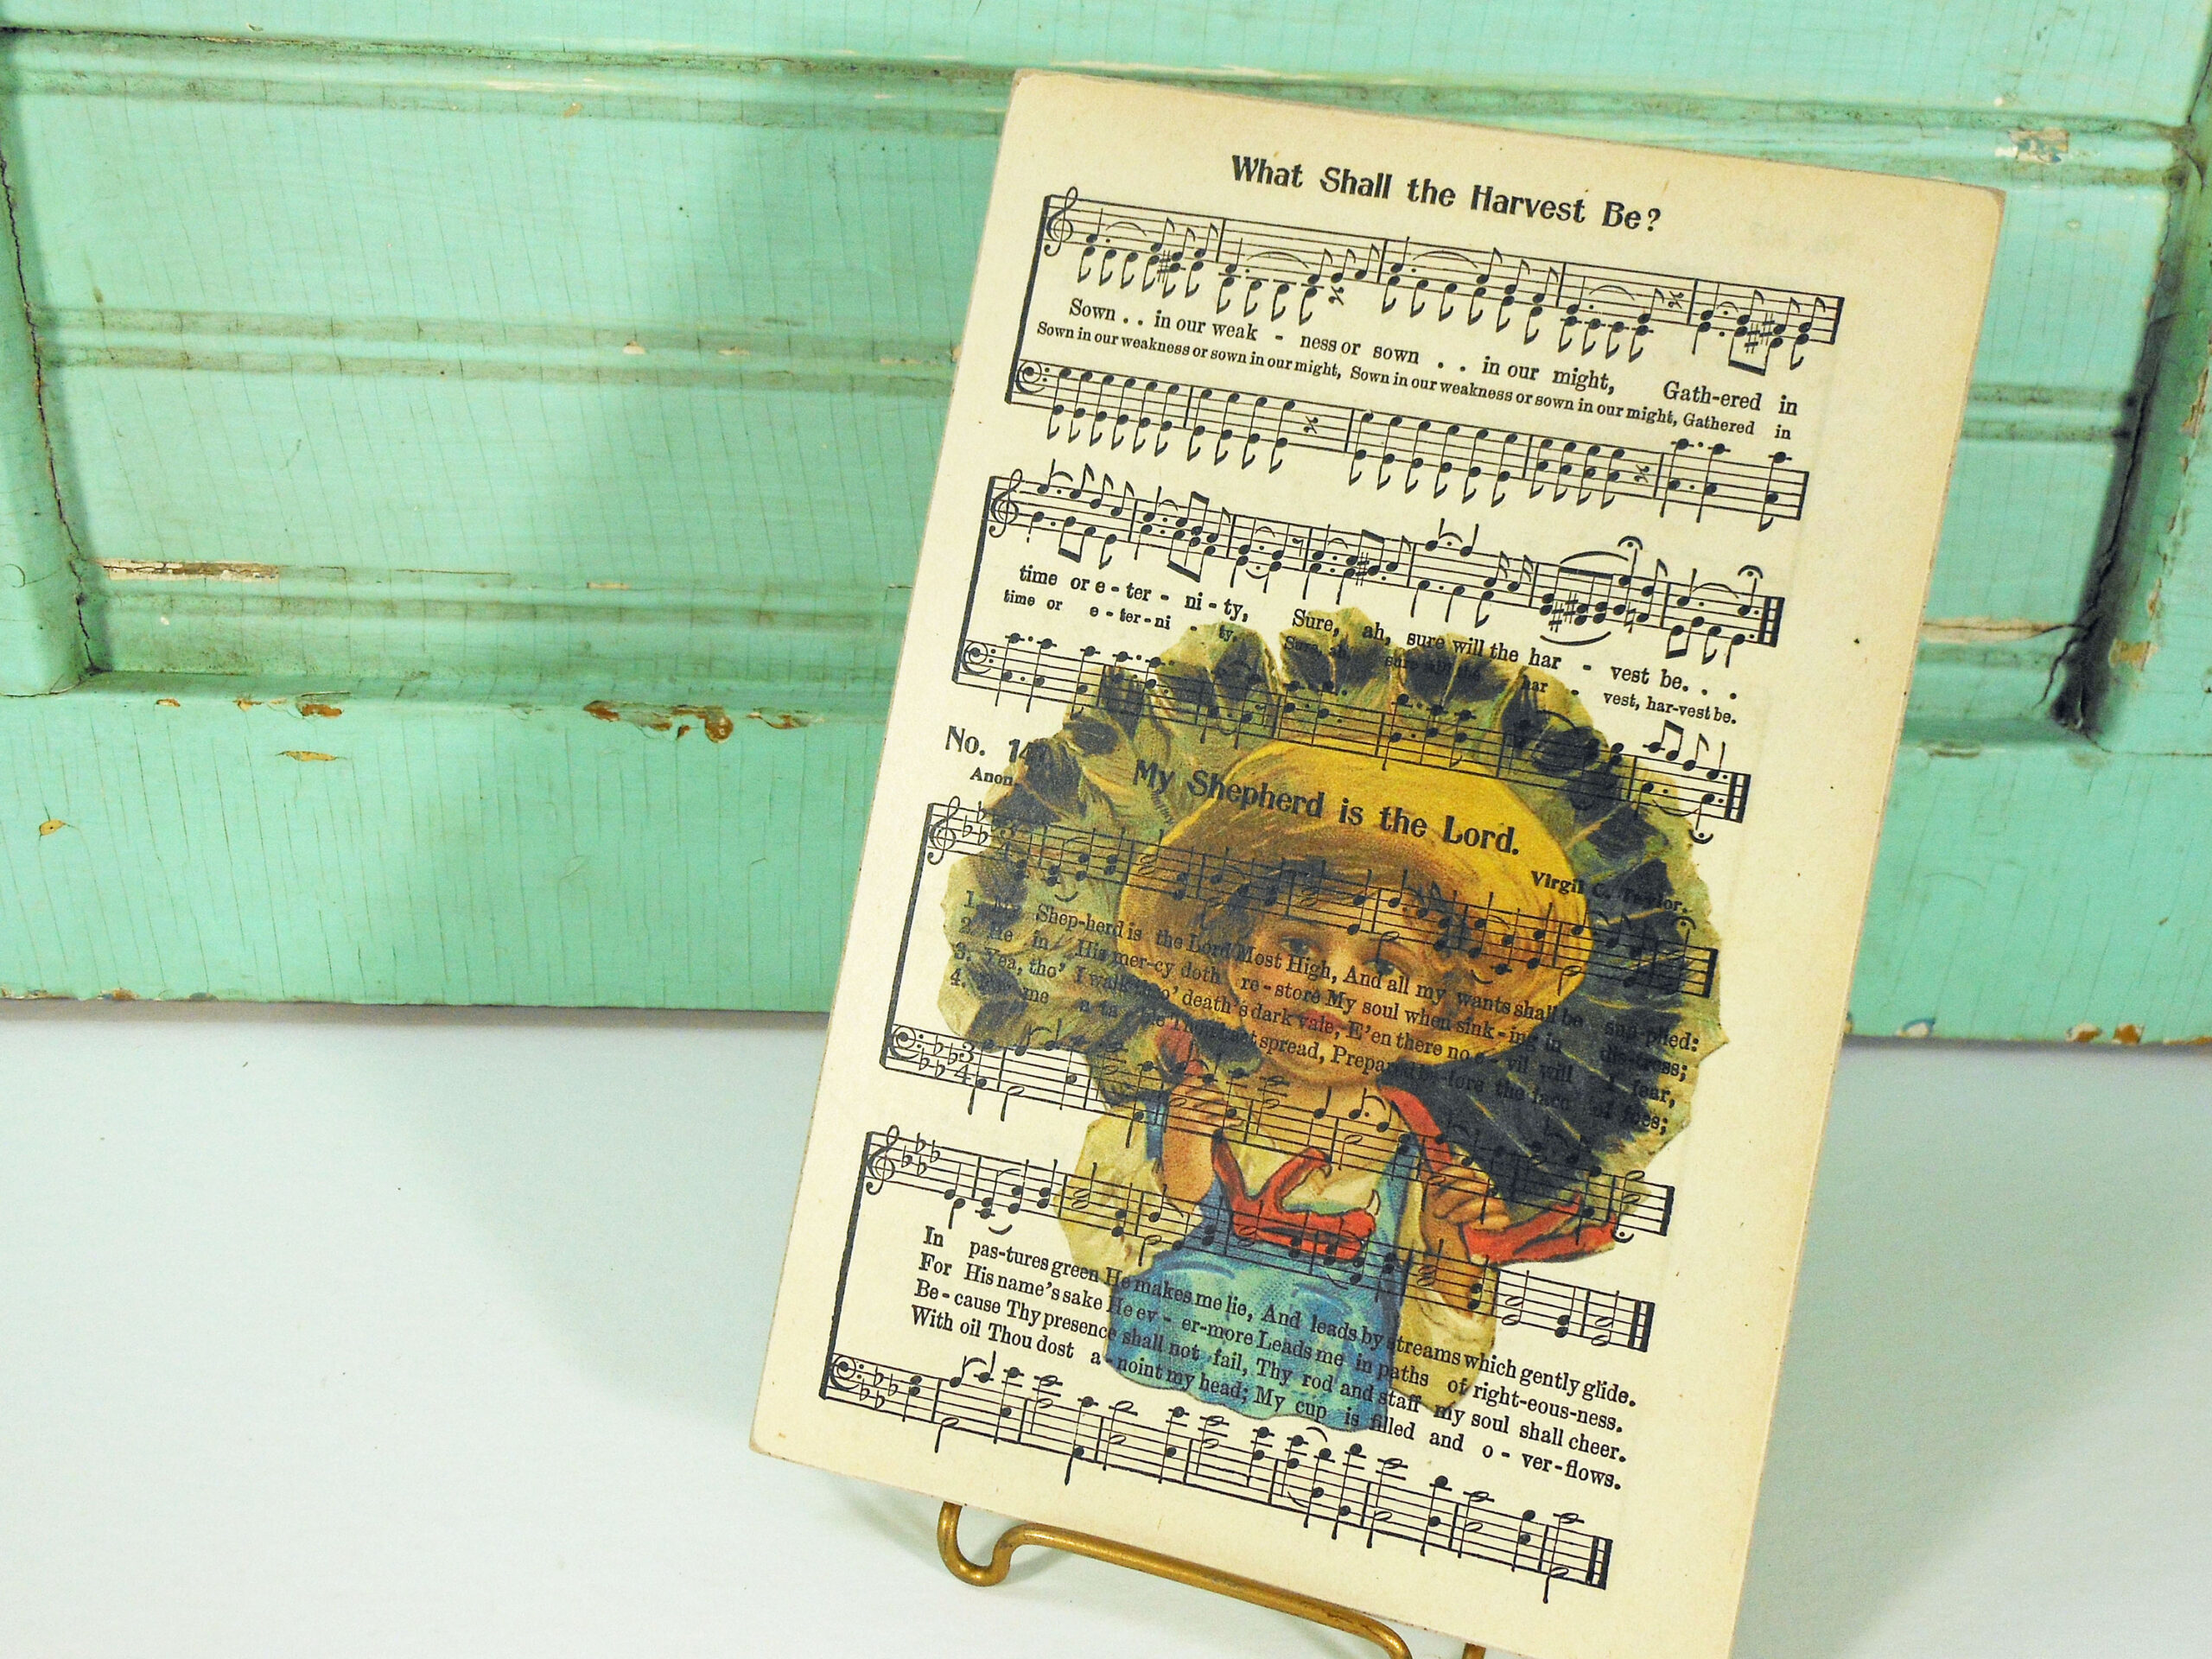 Harvest Turkey Print on Page from Vintage Hymnal Mounted on Hardboard